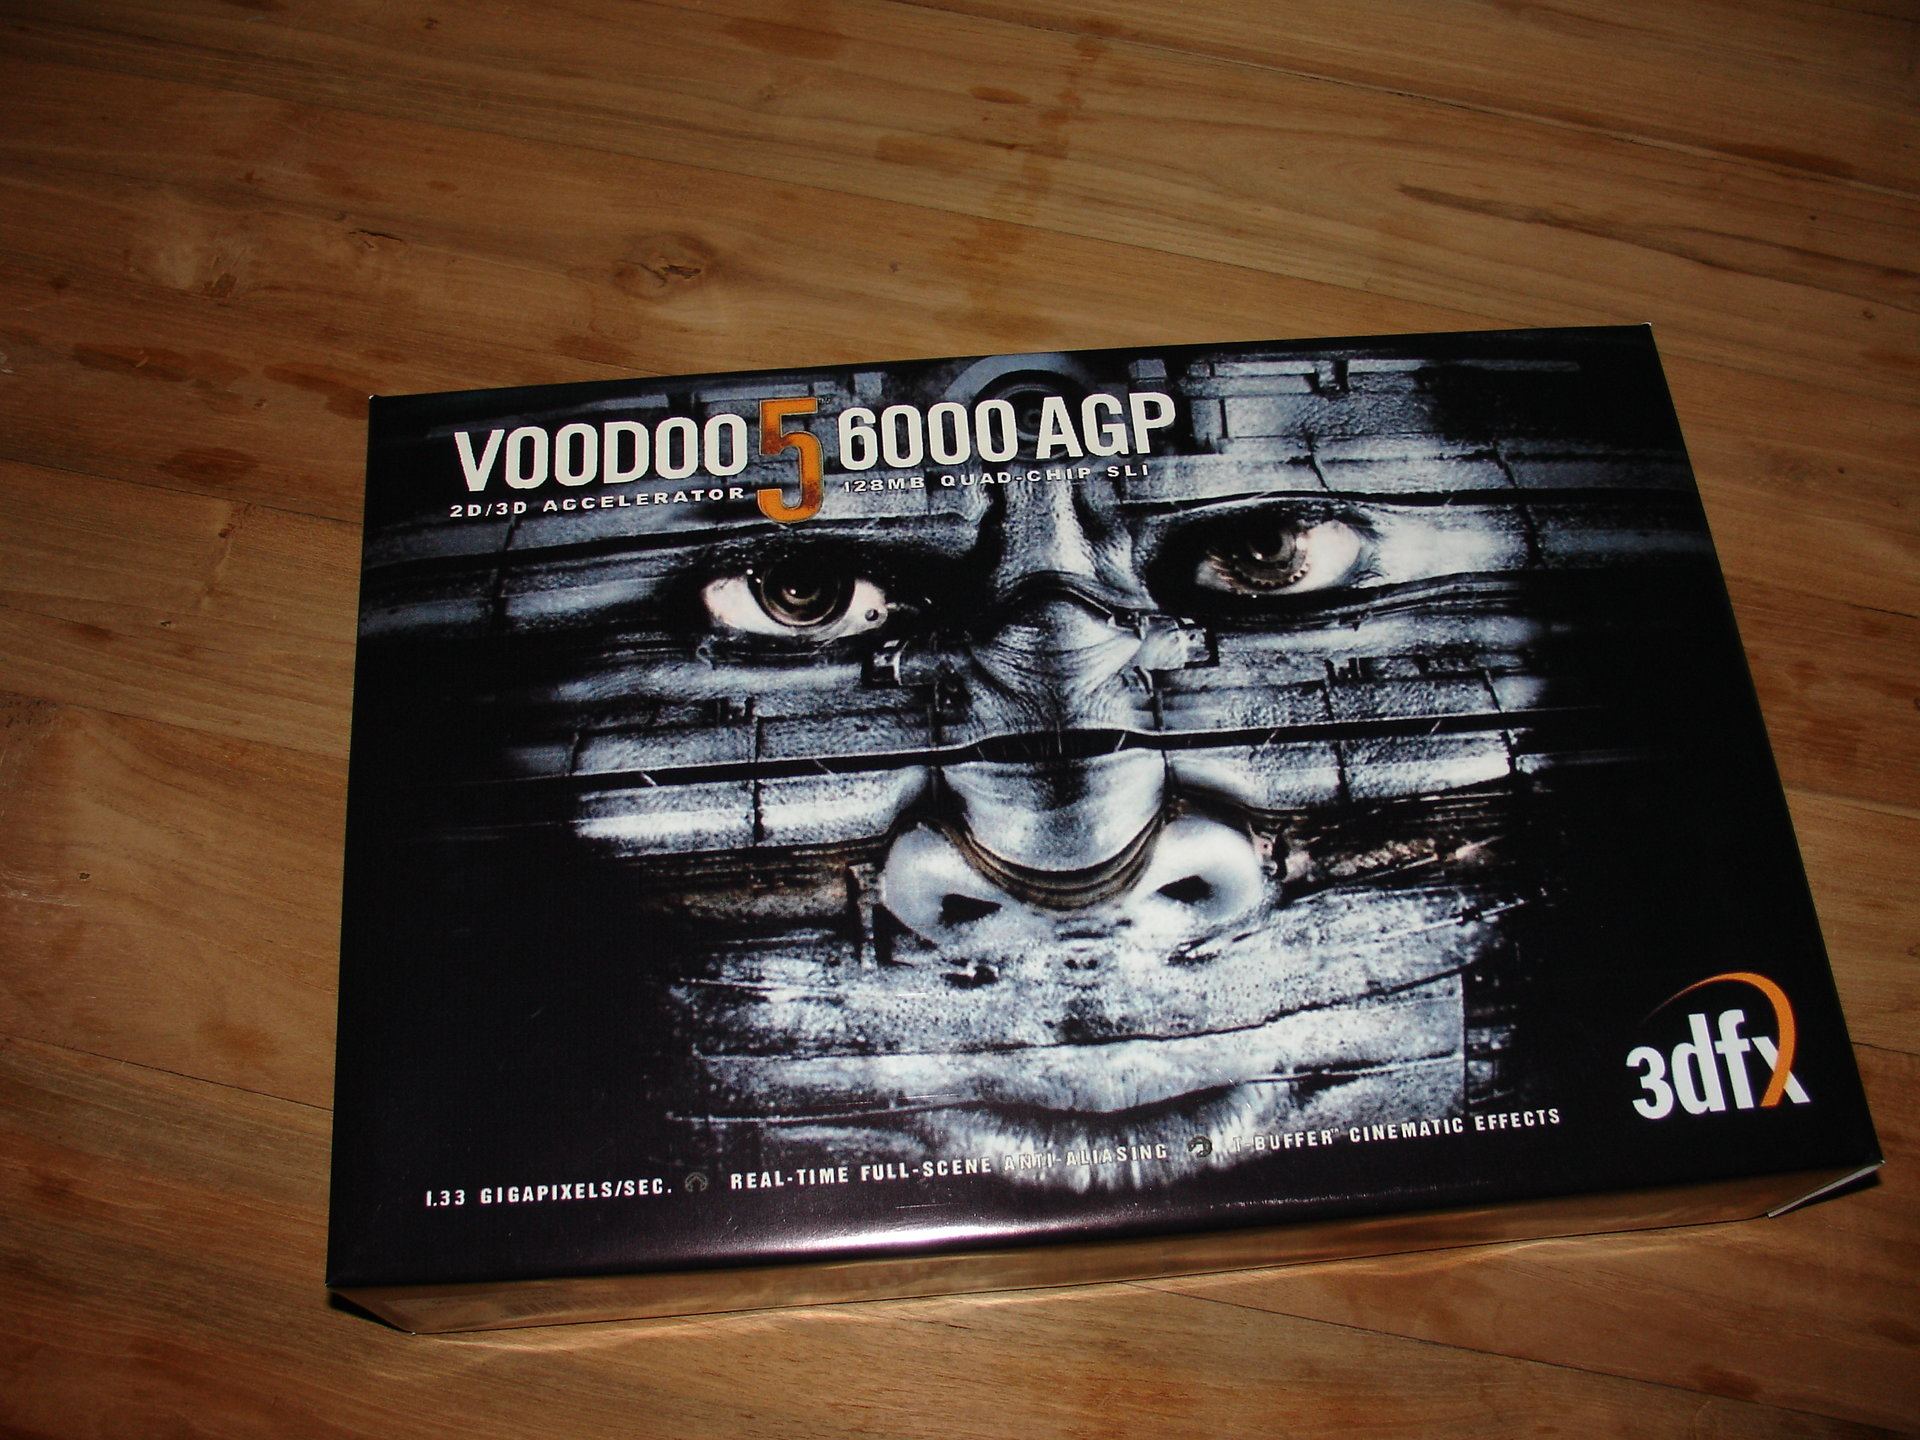 3dfx+Voodoo5+6000+Box+Replica+made+by+razrx+Top[1].JPG